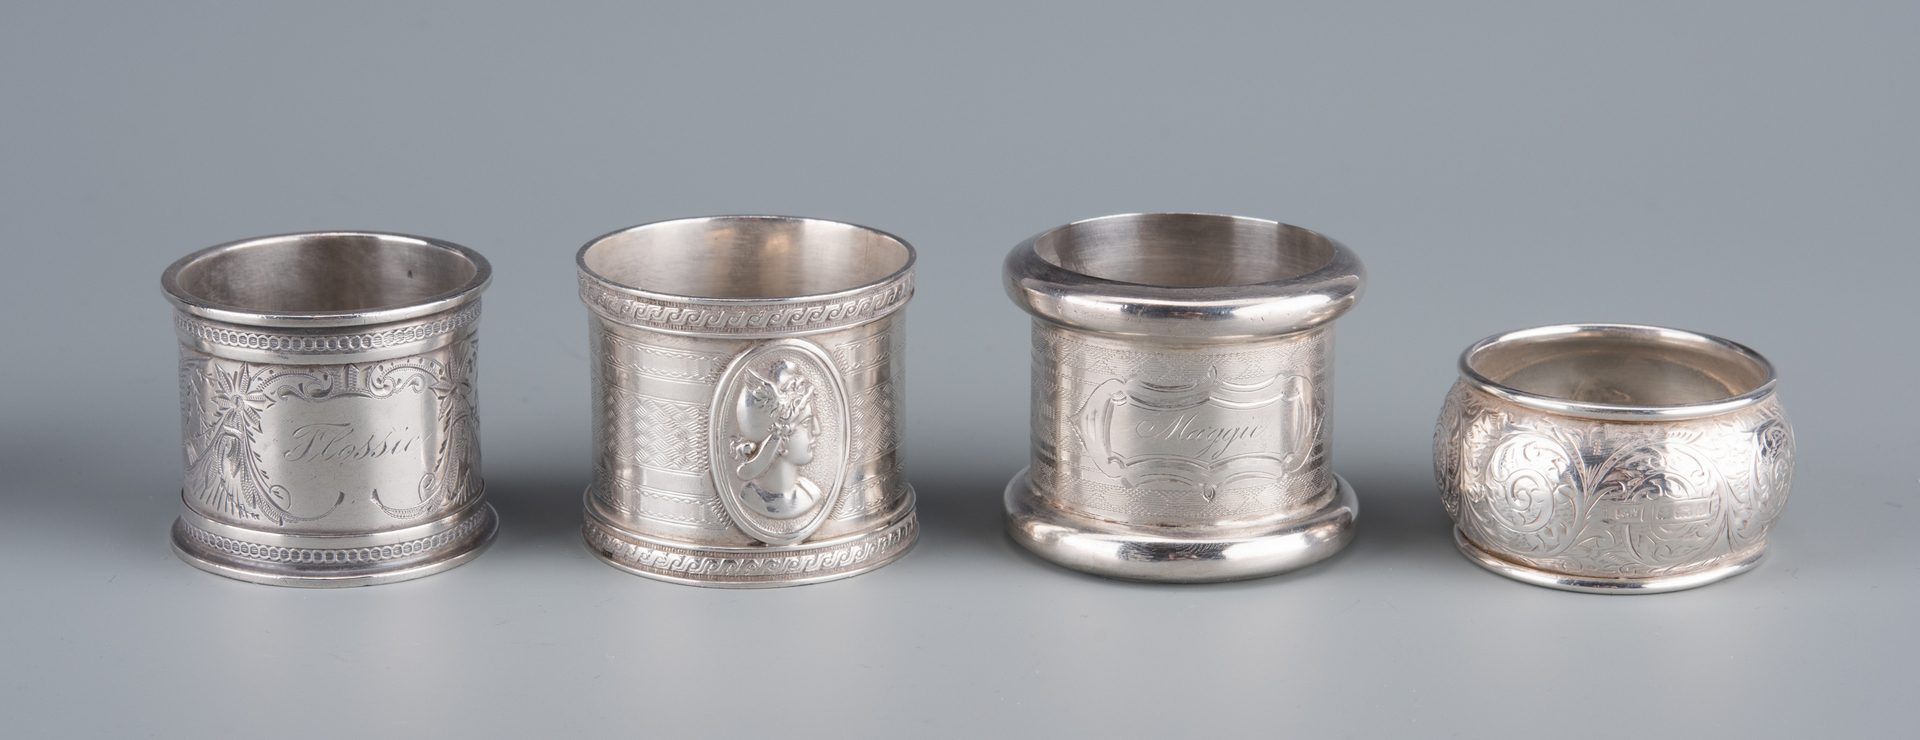 Lot 25: Victorian Napkin Rings and Knives